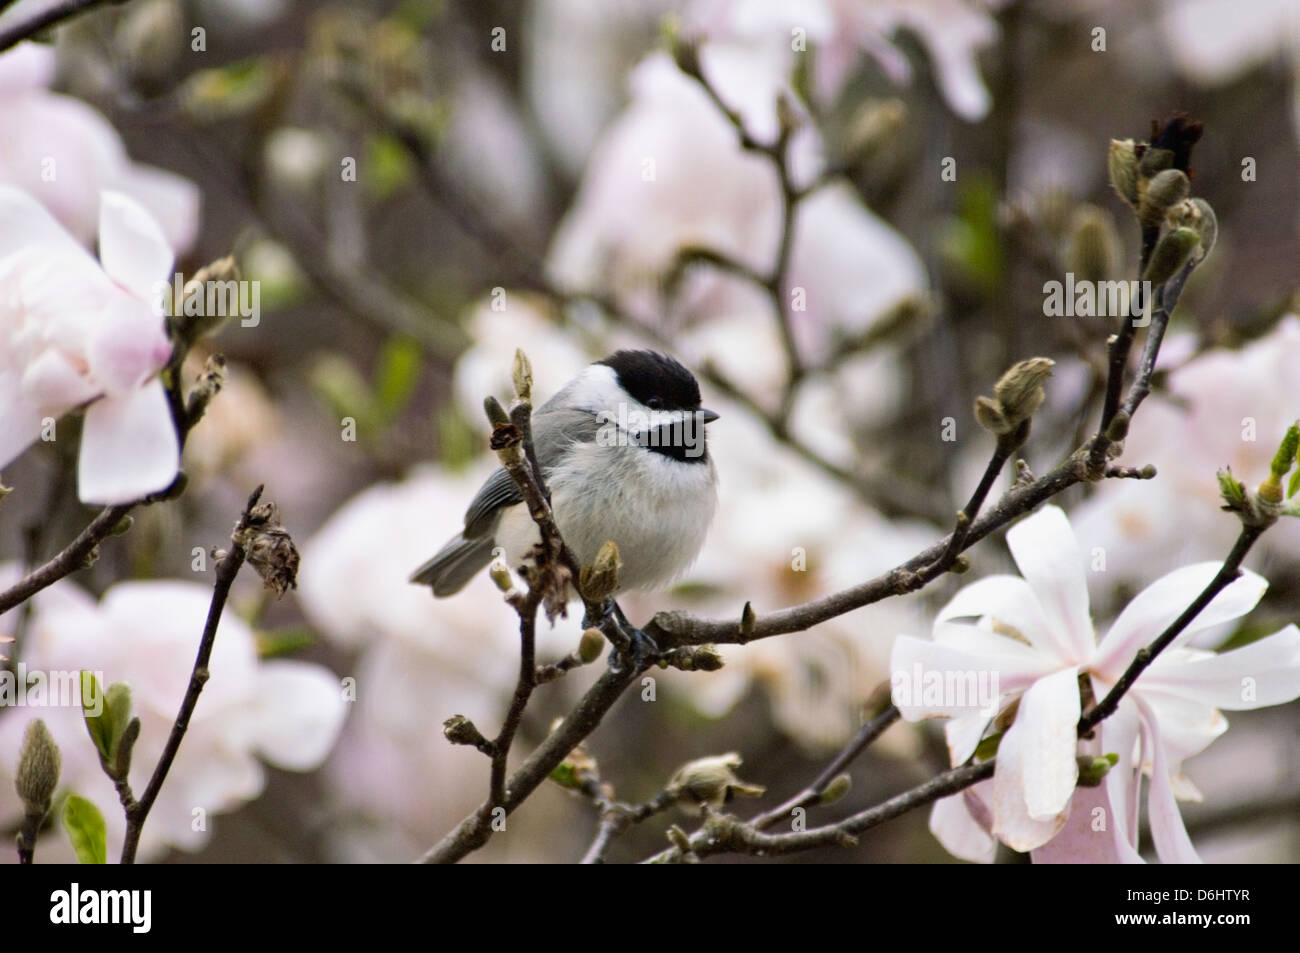 Carolina Chickadee Perched in Blooming Star Magnolia Shrub in Indiana - Stock Image